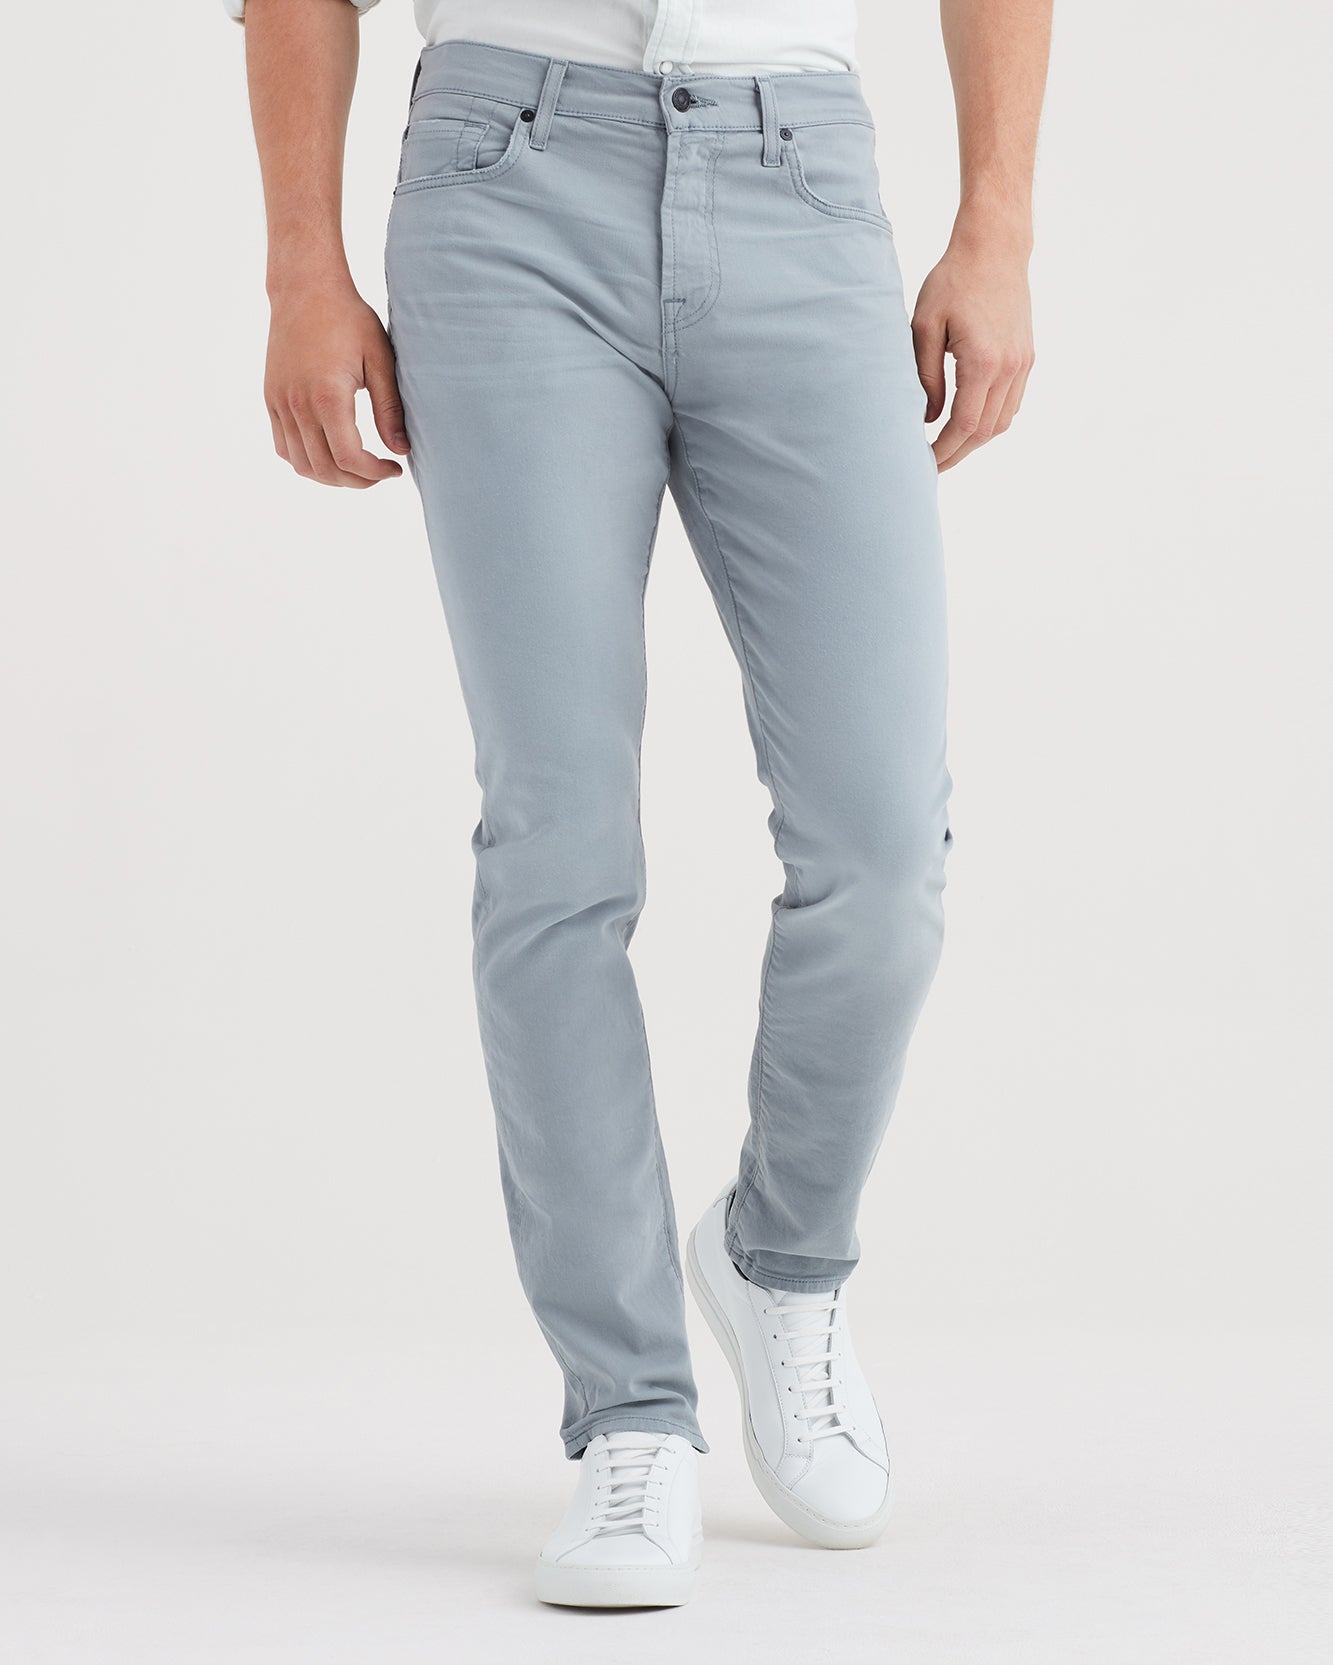 Image of Total Twill Adrien Slim Tapered With Clean Pocket in Mid Grey